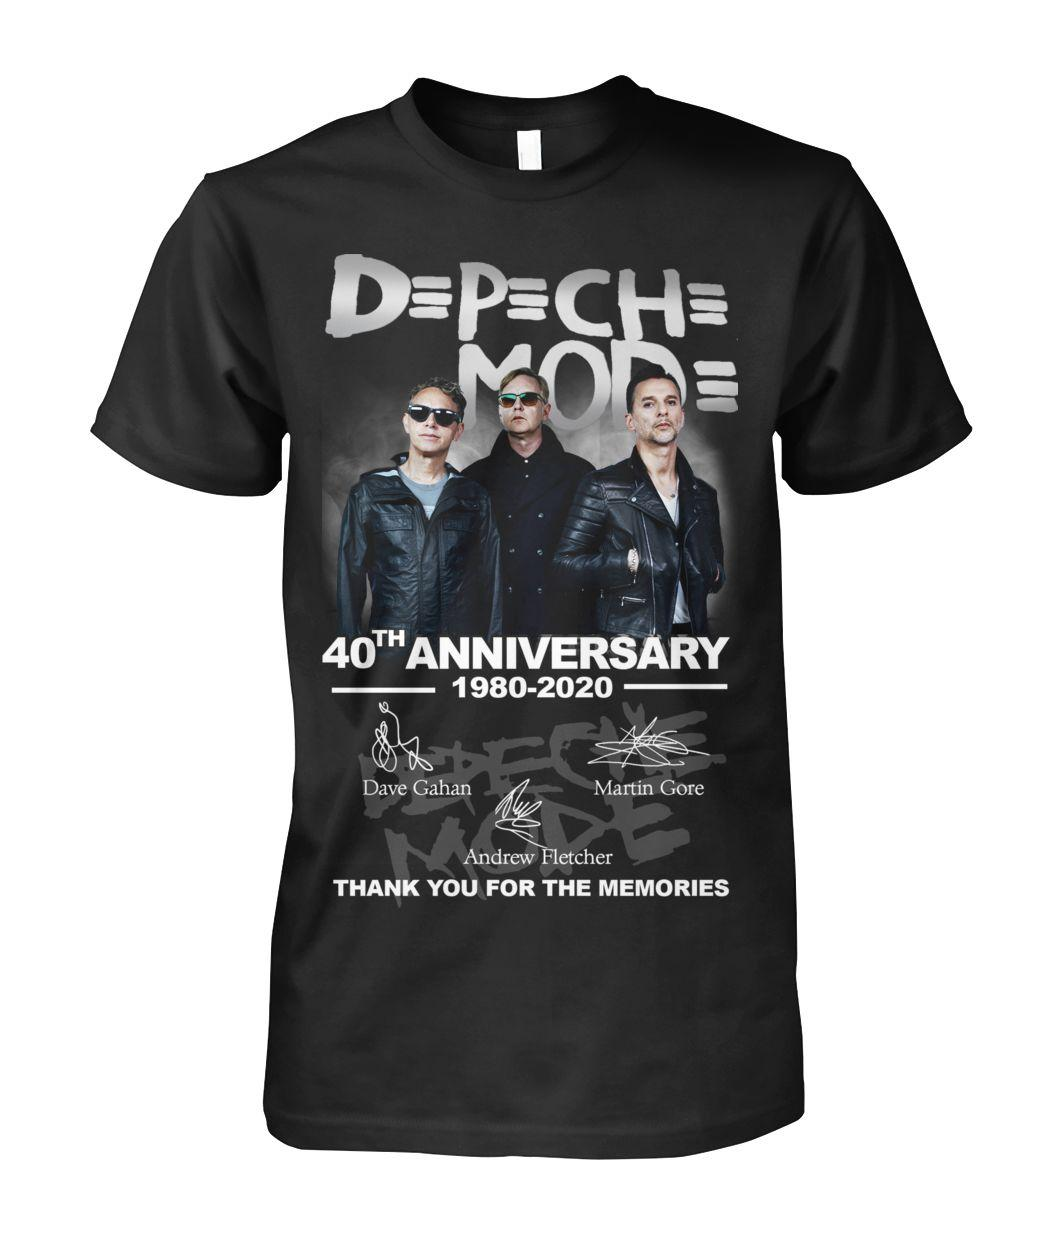 DPCH MOD 40th Anniversary 1980 2020 Thank You For The Memories Signature shirt